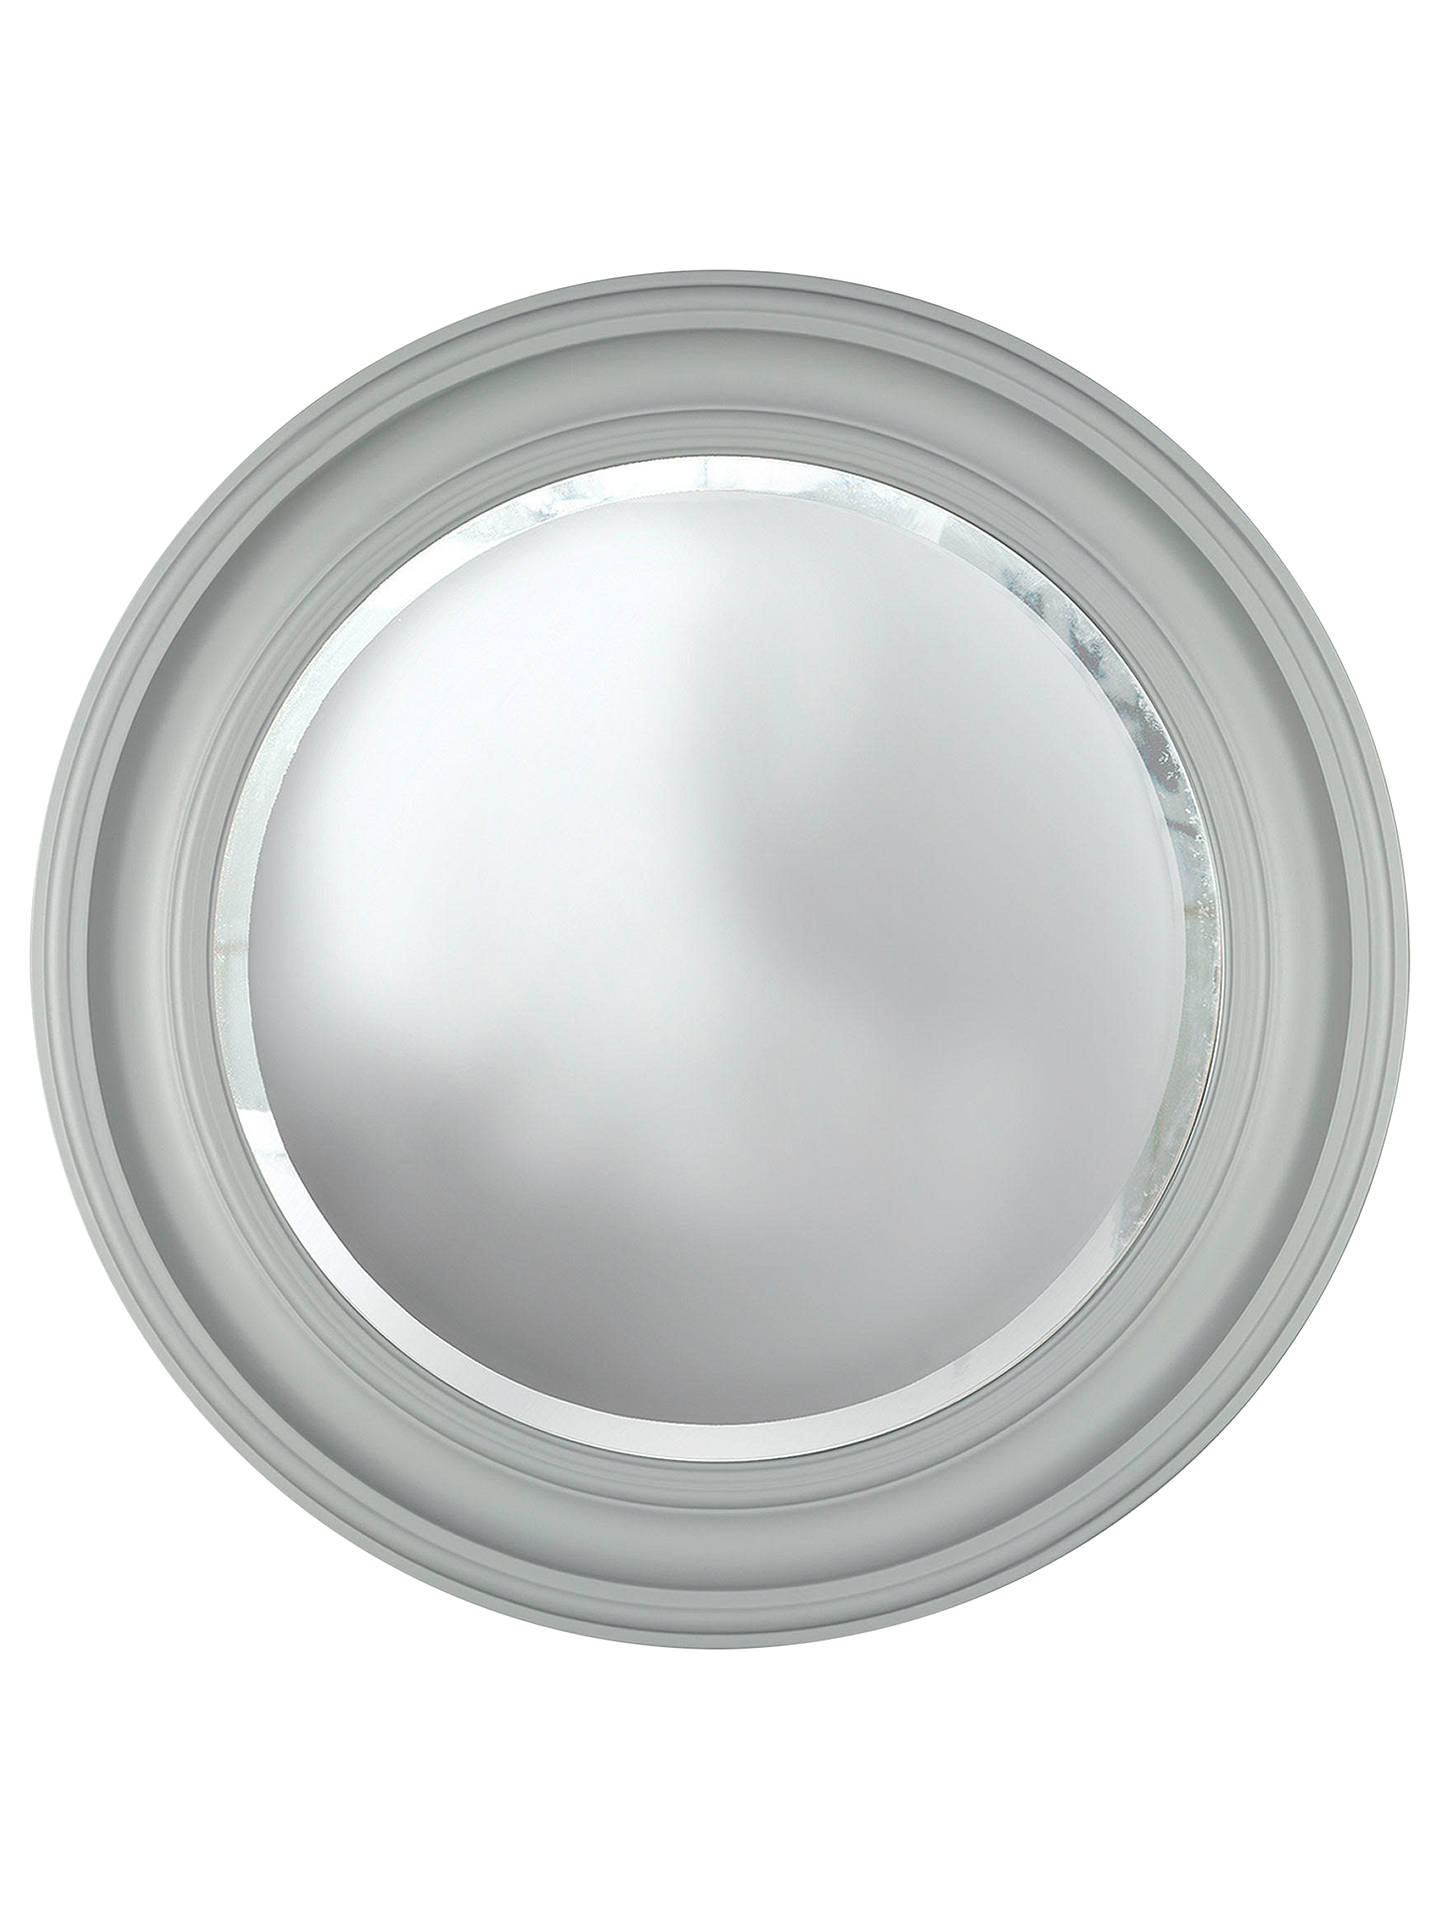 Croft Collection Large Porthole Round Mirror Dia 68cm Grey At John Lewis Partners